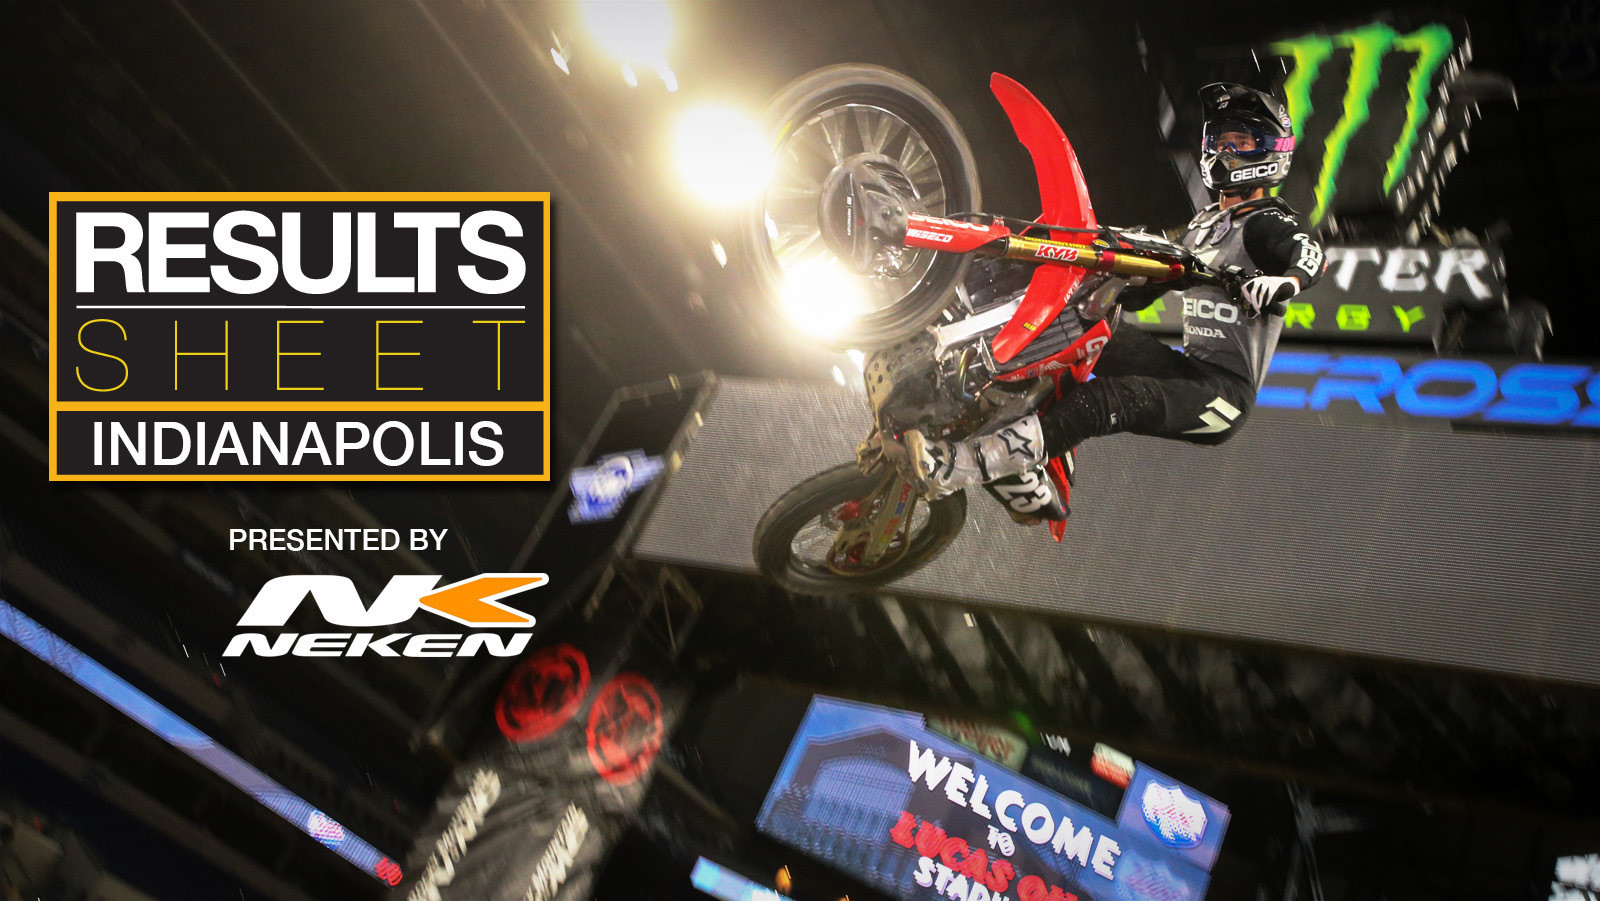 Results Sheet: 2019 Indianapolis Supercross